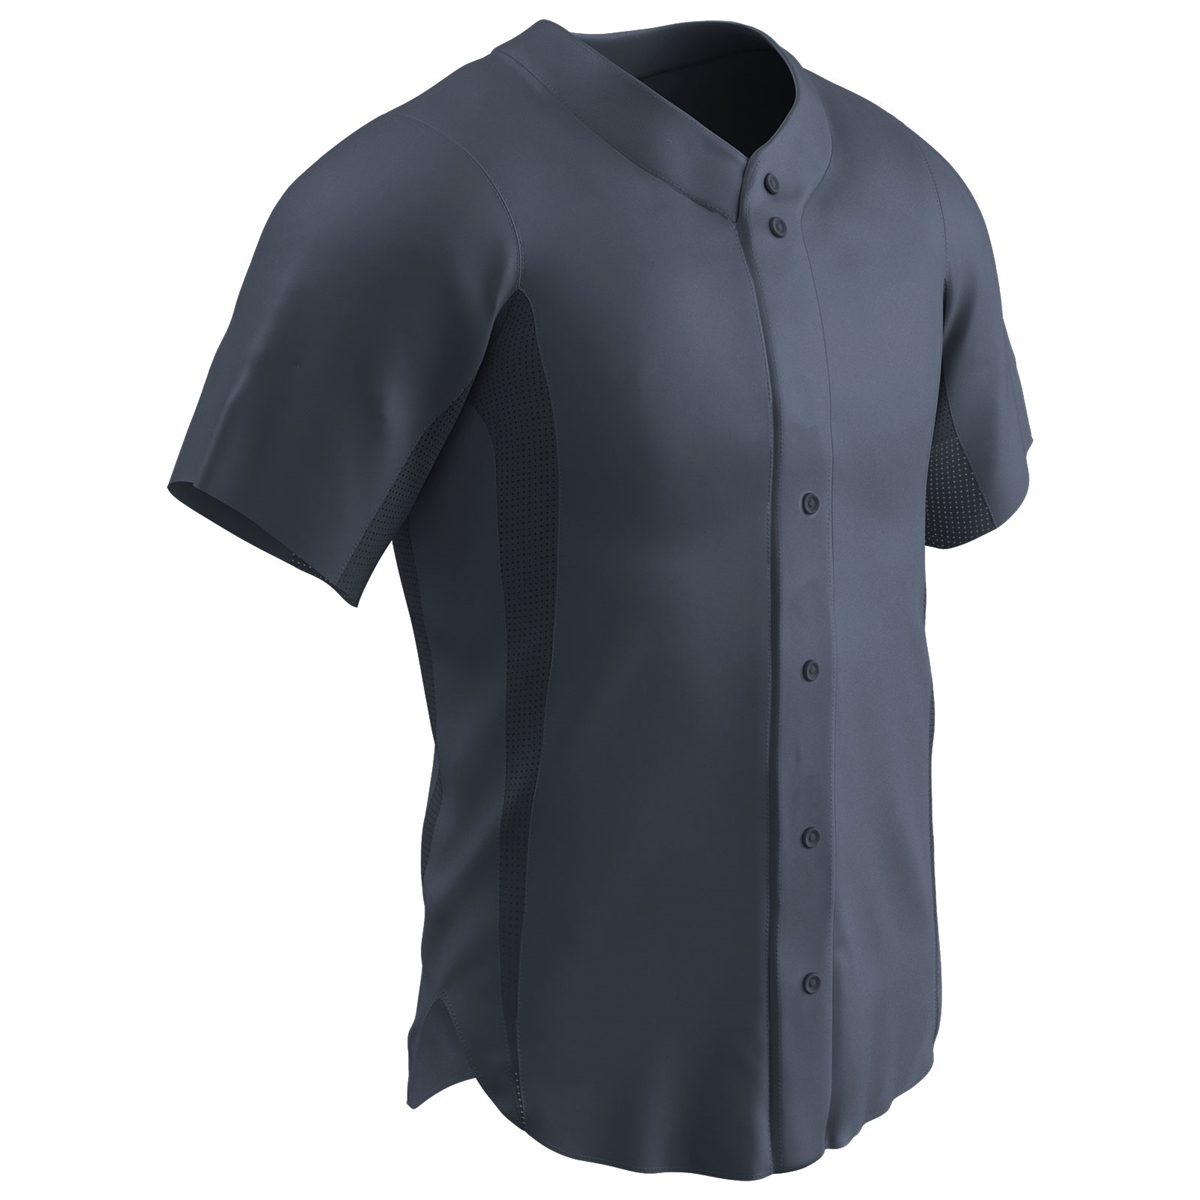 f9ac1d08687 Champro Reliever Full Button Baseball Jersey · Larger Photo Email A Friend